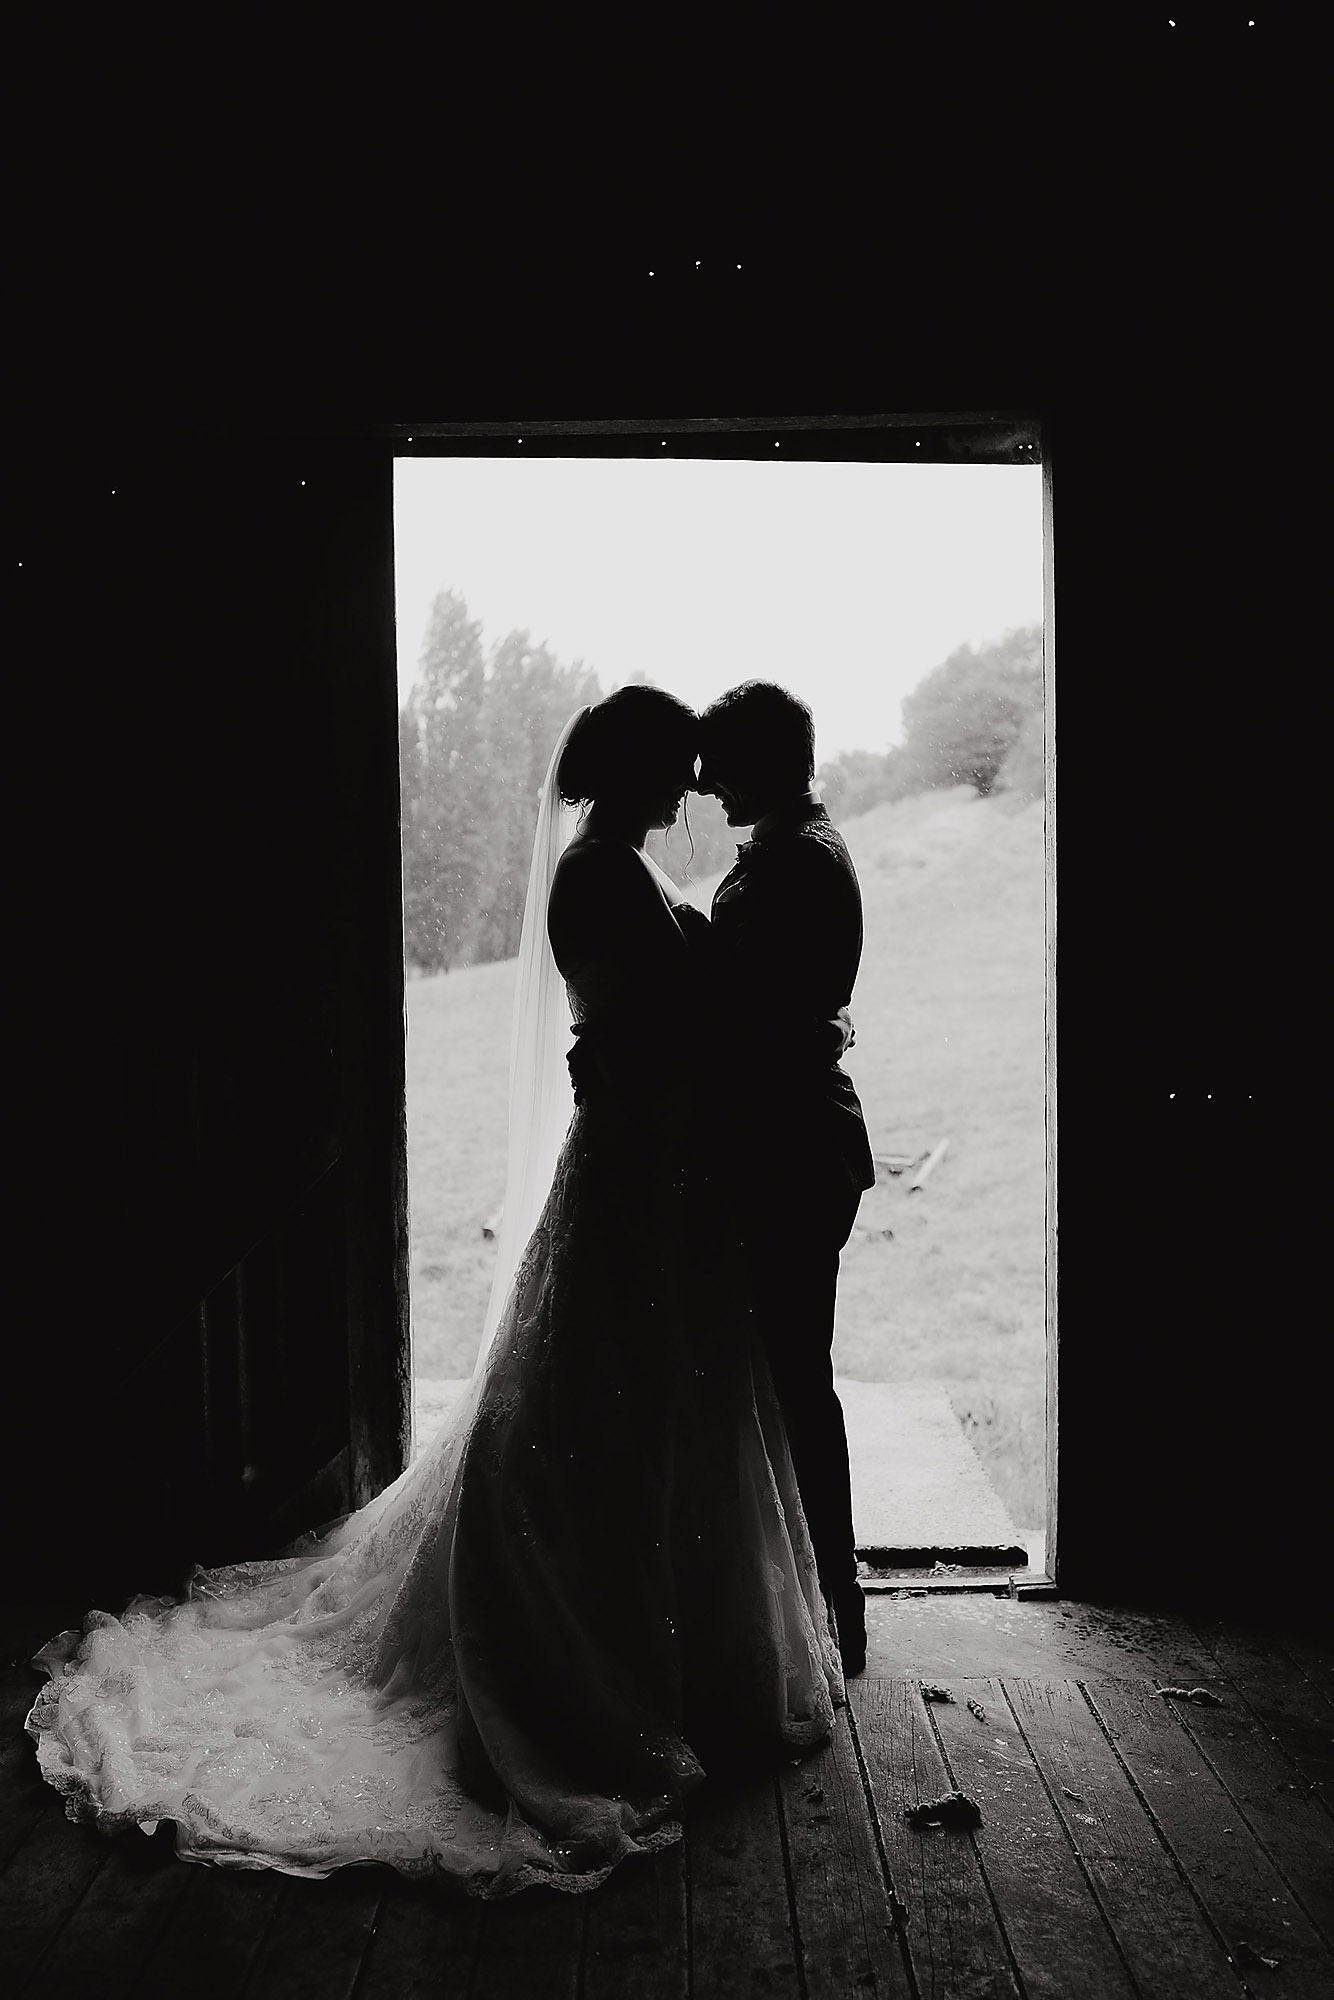 bride and groom silhouette in wool shed rossendale vineyard black and white bride and groom kissing at sunset ontop of hills silhouette jonkers farm christchurch wedding photographer